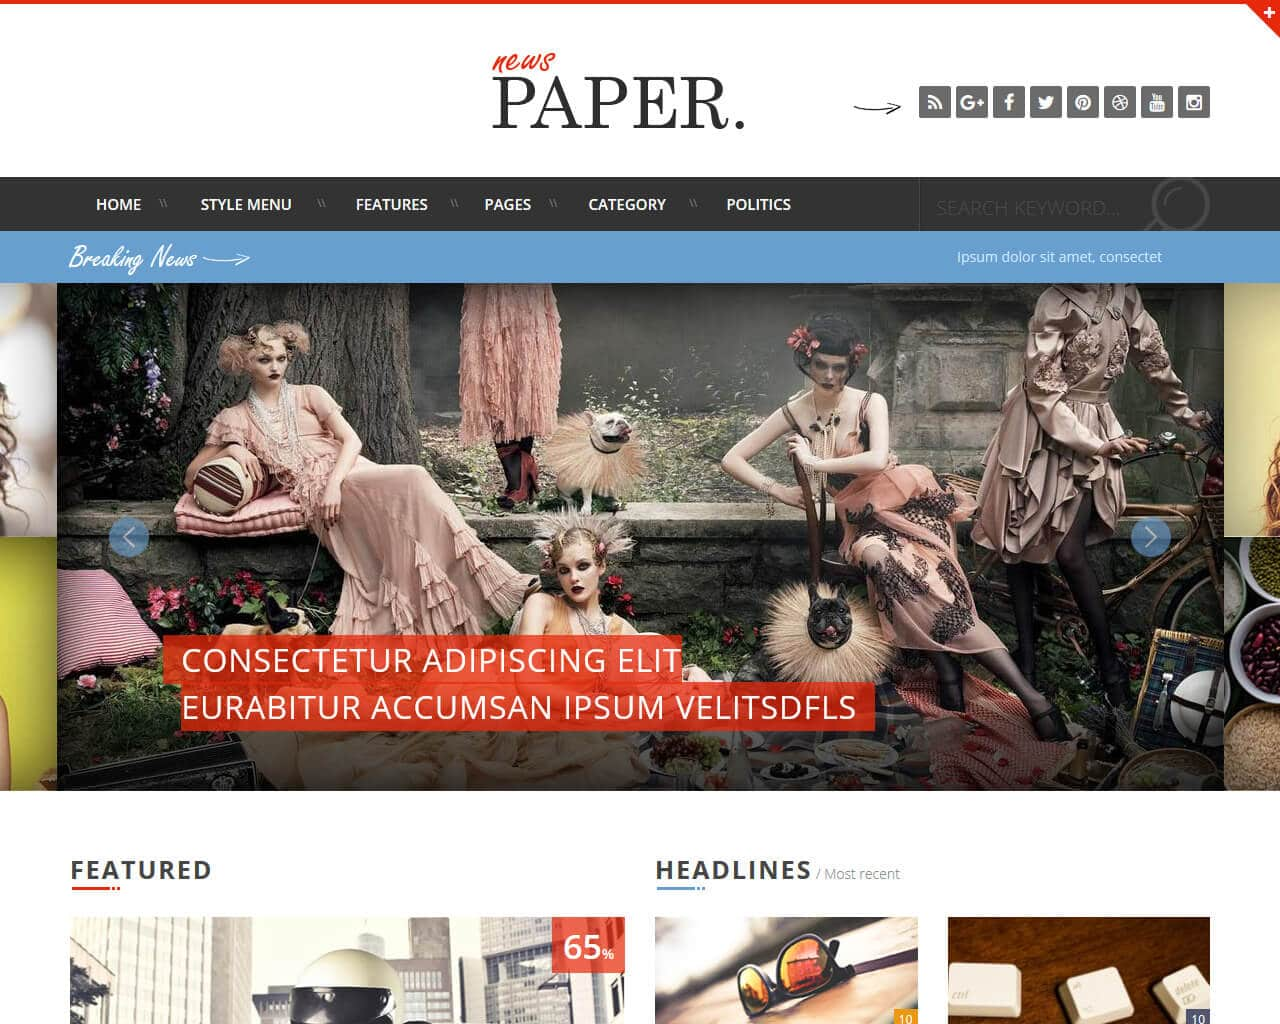 News Paper Website Template